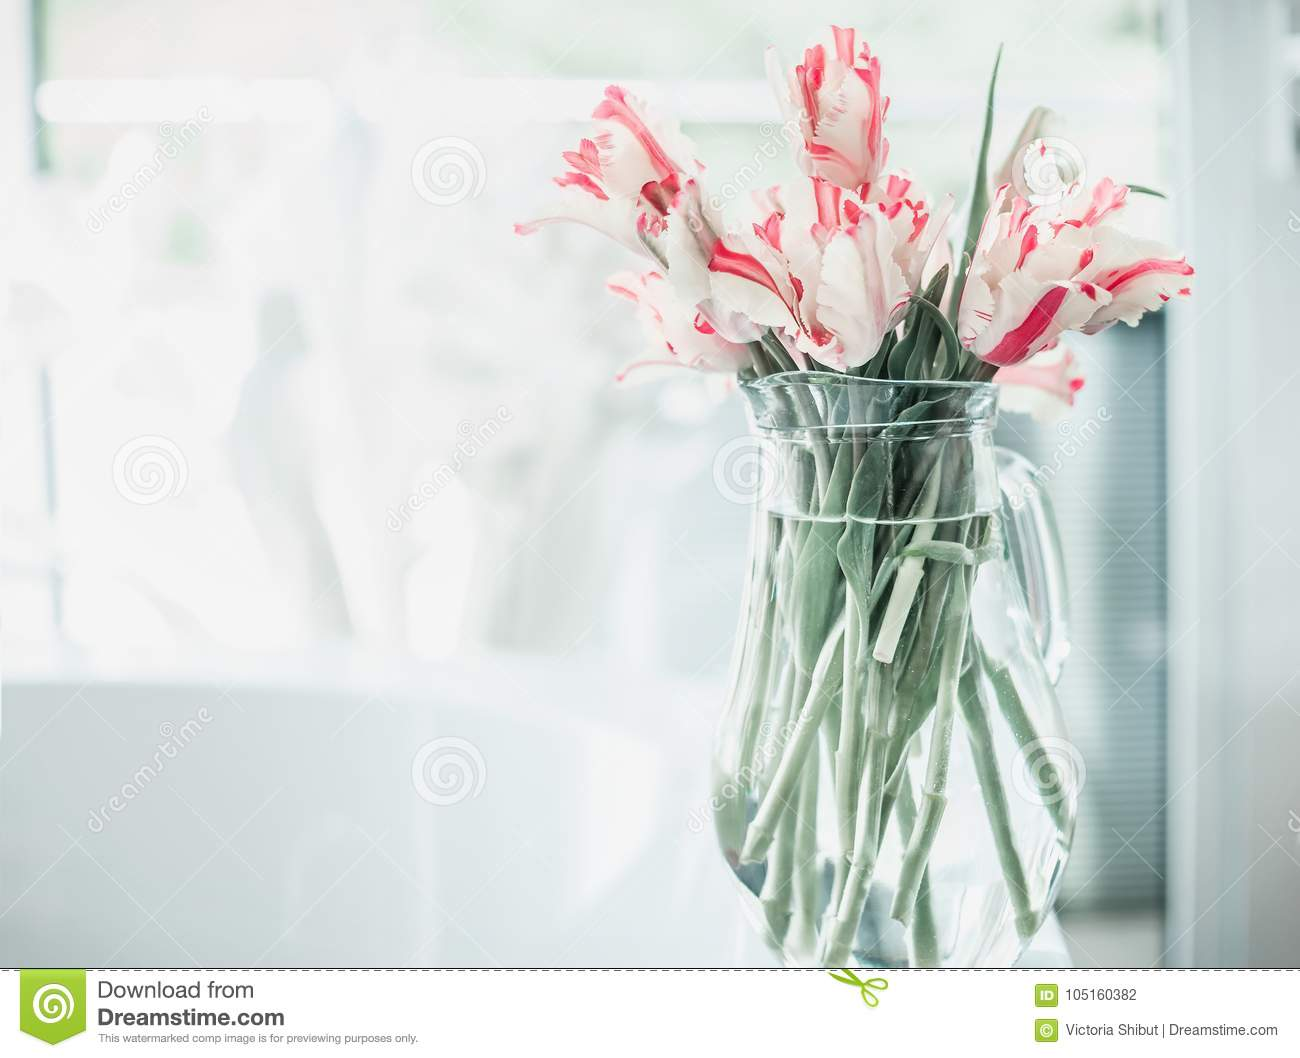 Pretty Bunch Of Tulips In Glass Jug On White Table At Window